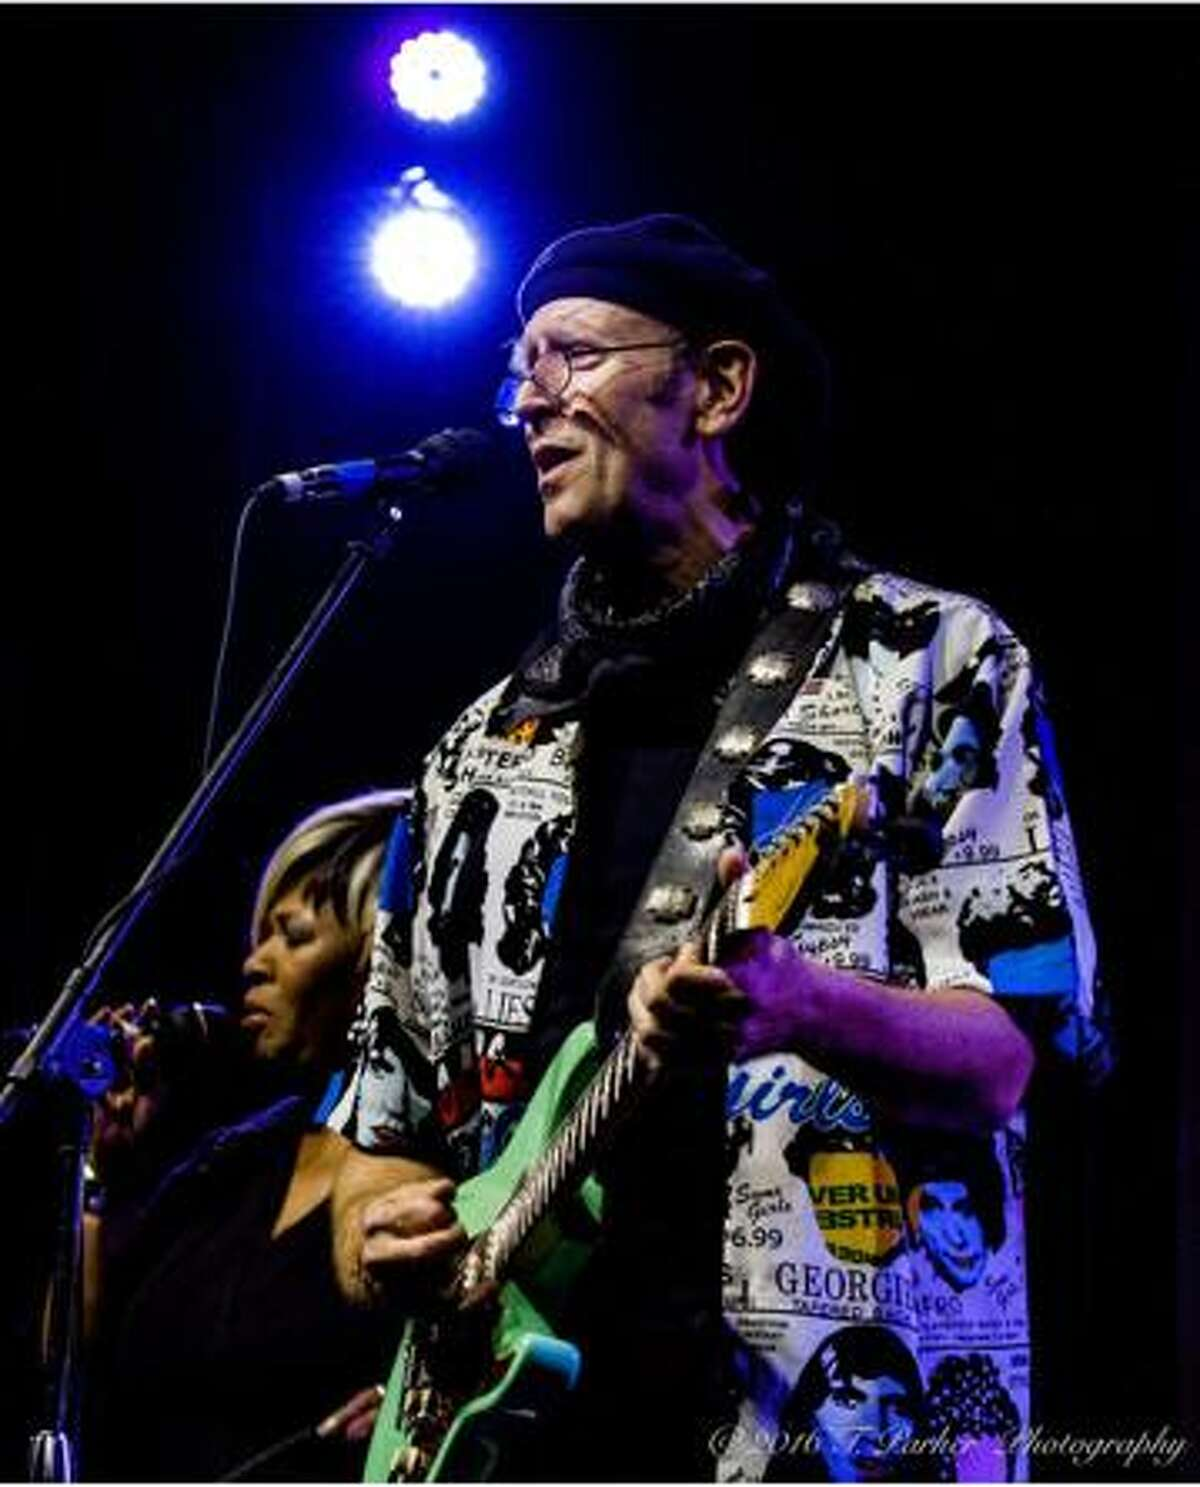 Charlie Karp & The Name Droppers will perform at Cafe Nine in New Haven with Rocky Lawrence opening.